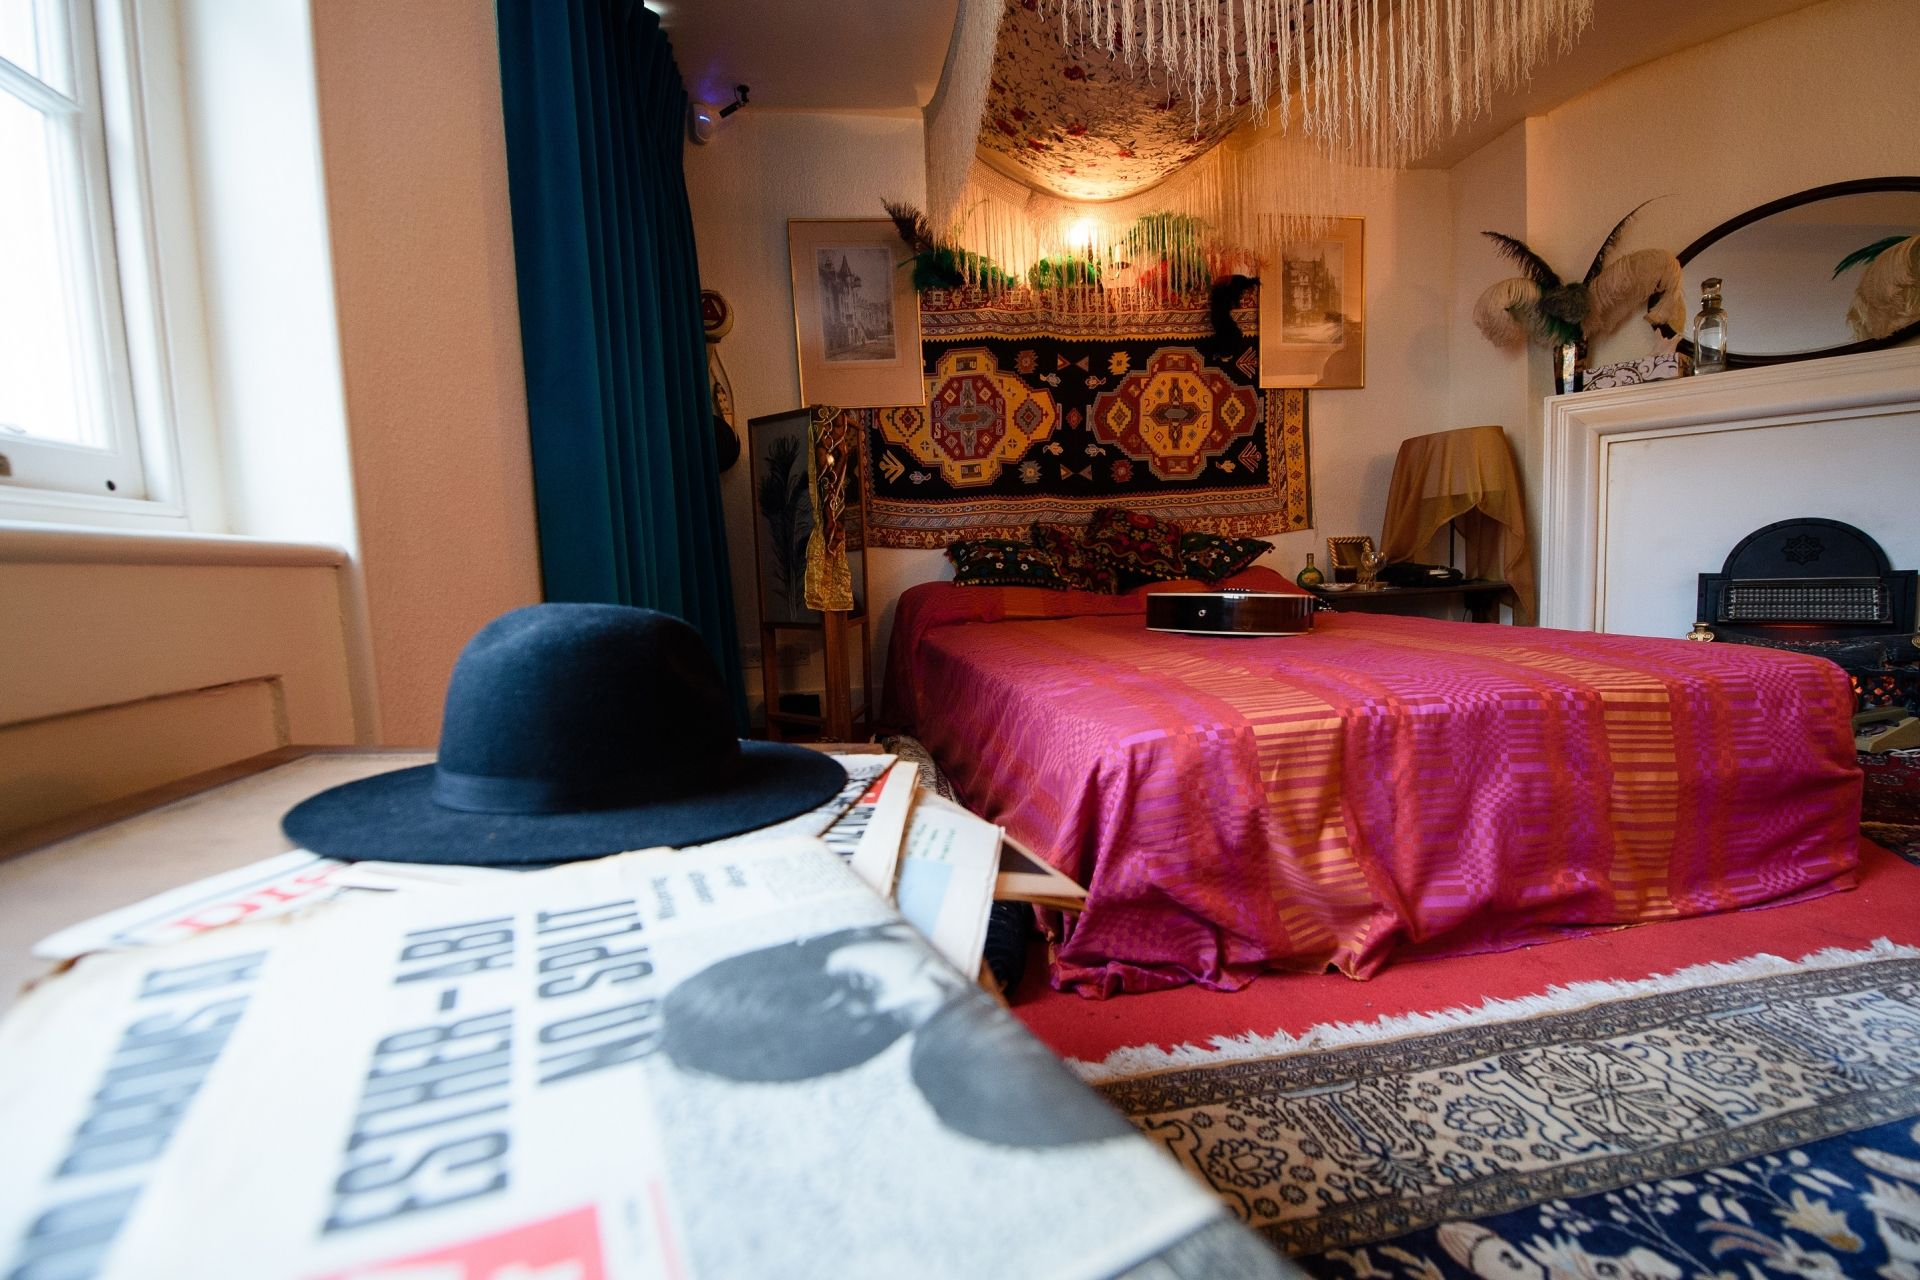 The recreated bedroom of US musician Jimi Hendrix, is seen in the room he actually rented, to promote a forthcoming exhibition, in central London, England on February 8, 2016. - Located above the Handel House museum, Hendrix's former bedroom has been dressed to resemble how it was when he lived there in 1968-69. From February 10, 2016, the upper floor rooms of 23 Brook Street, will be open to the public, and includes galleries of images and videos showing his story. (Photo by LEON NEAL / AFP)